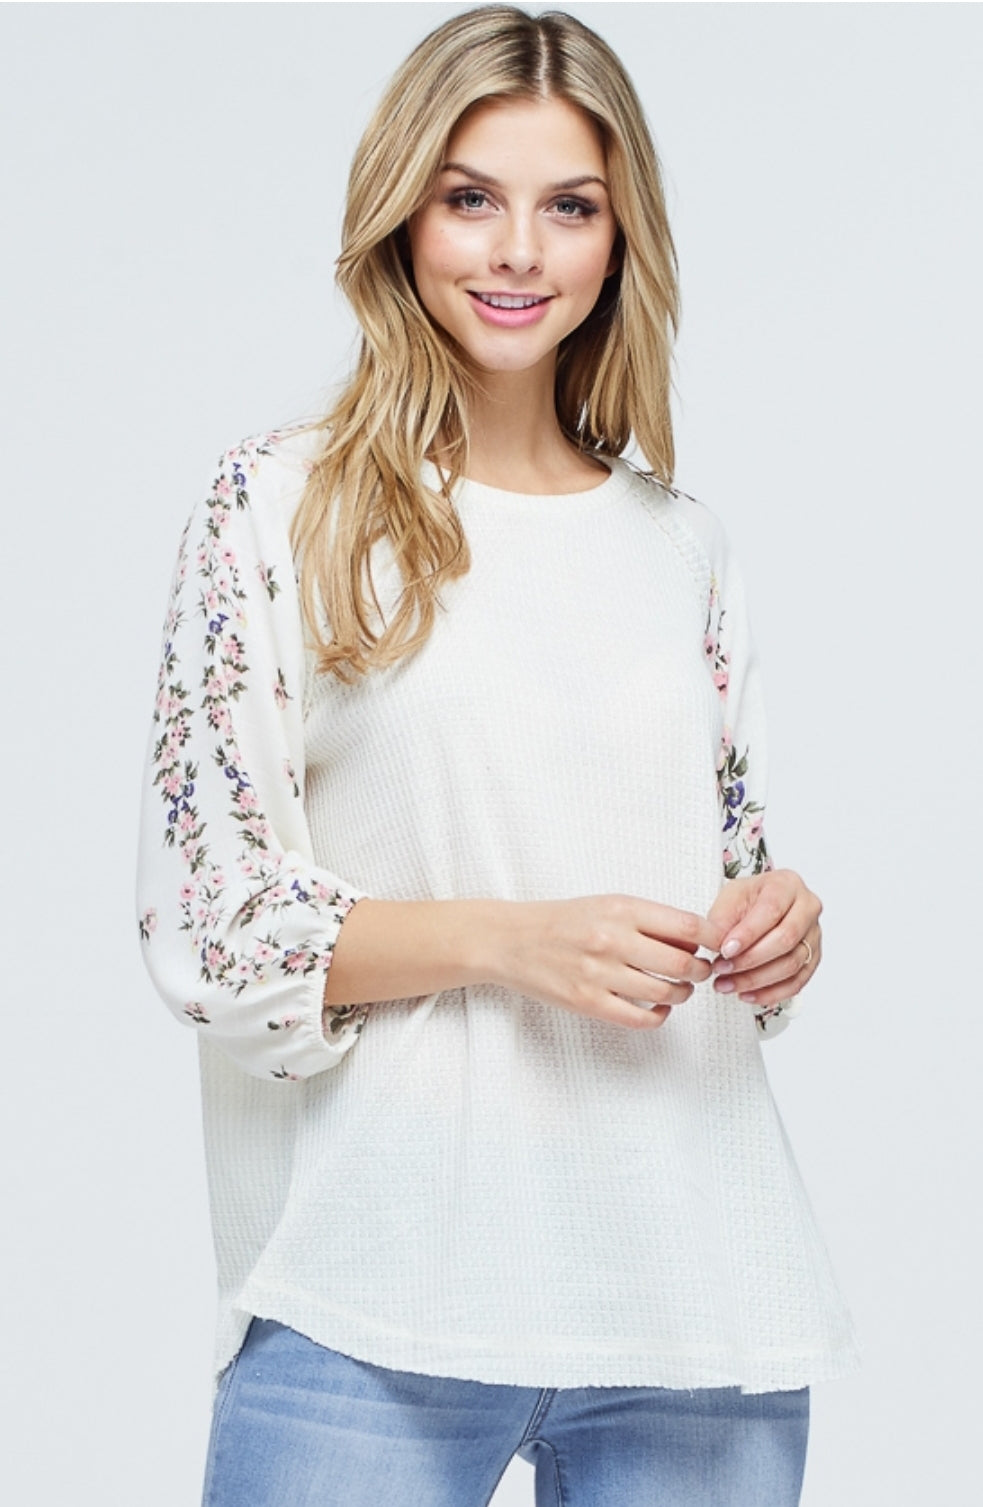 Waffle knit floral sleeve in white